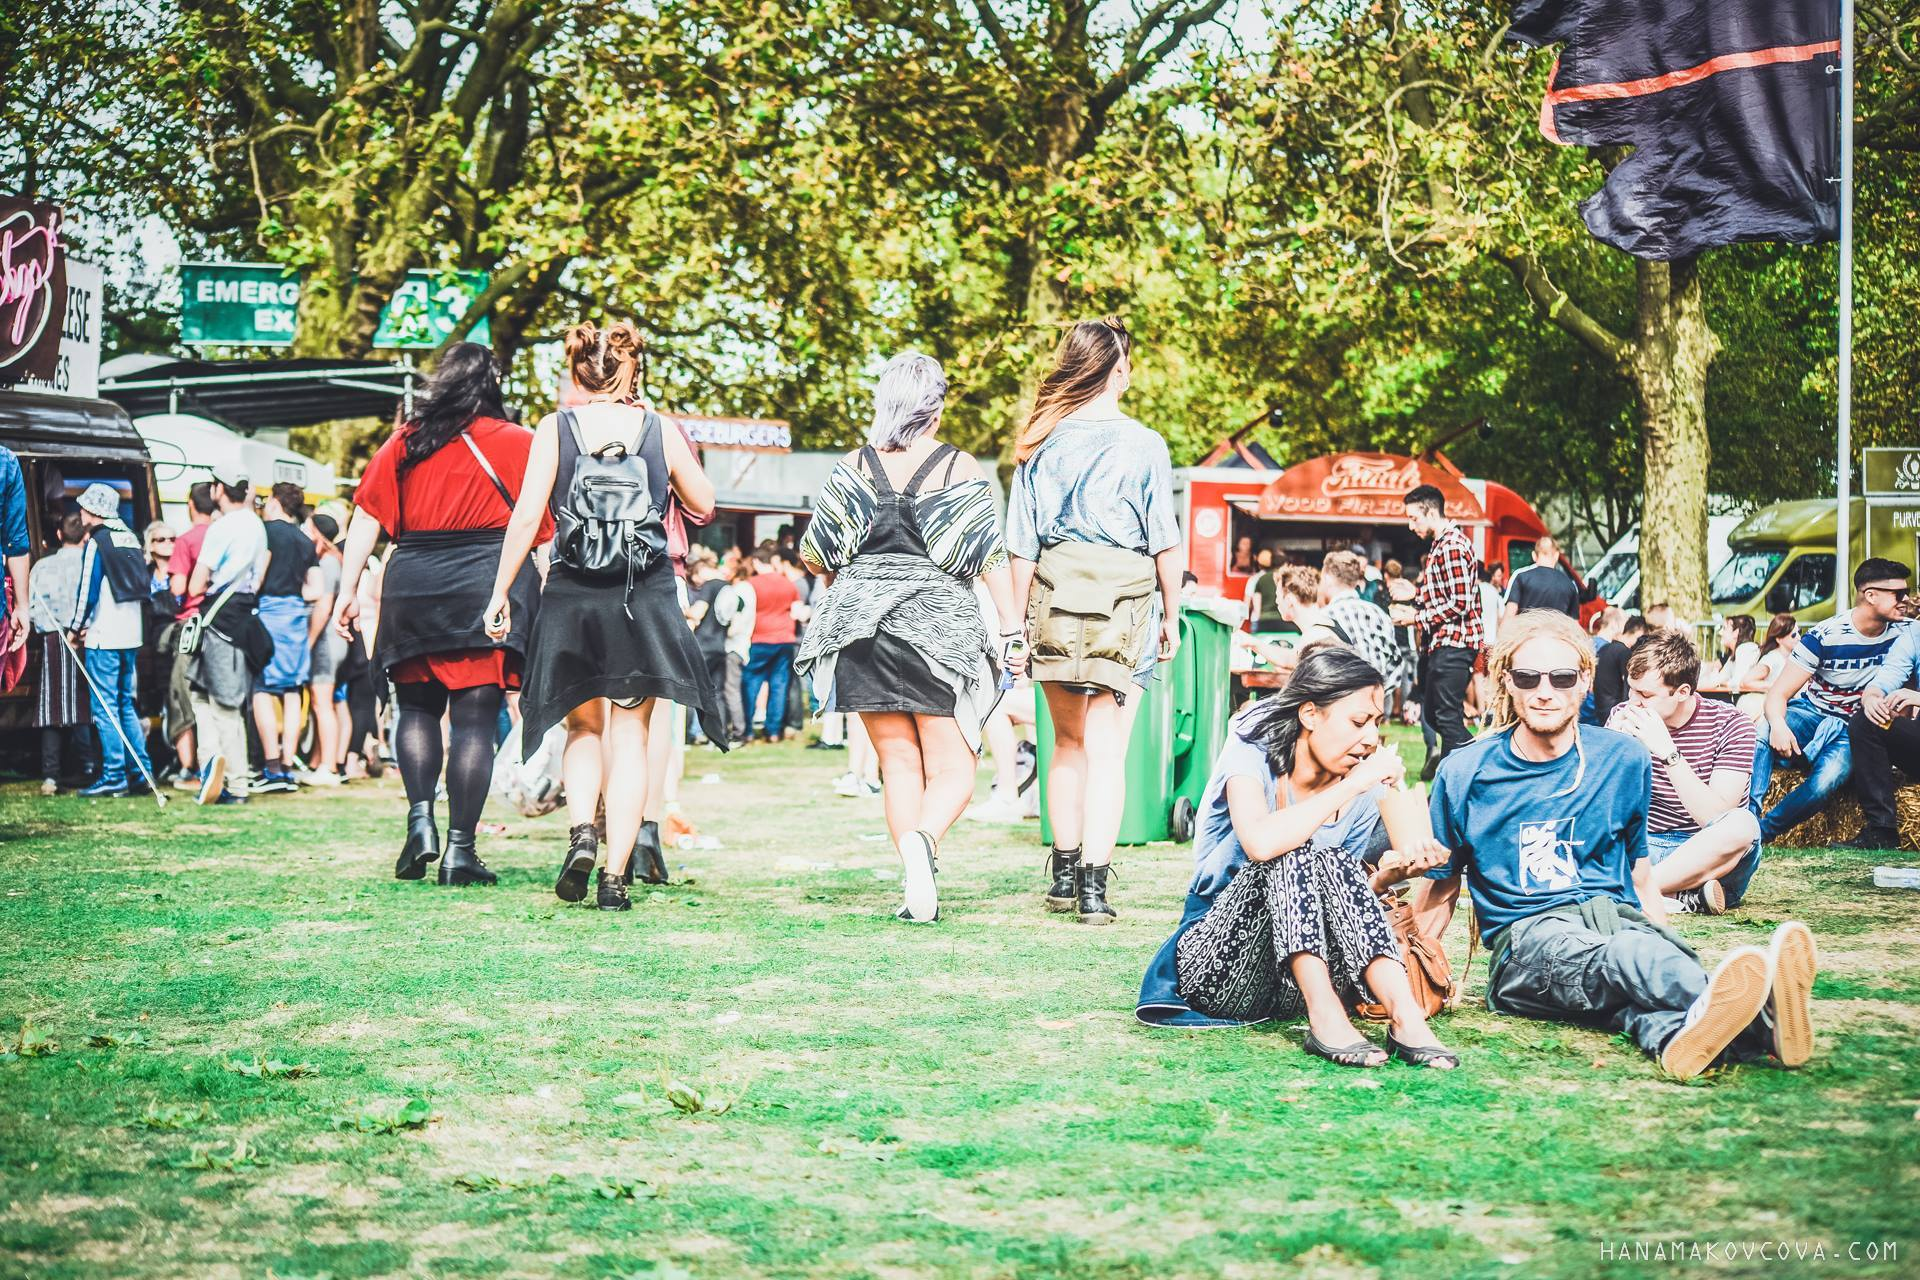 HOSPITALITY IN THE PARK -